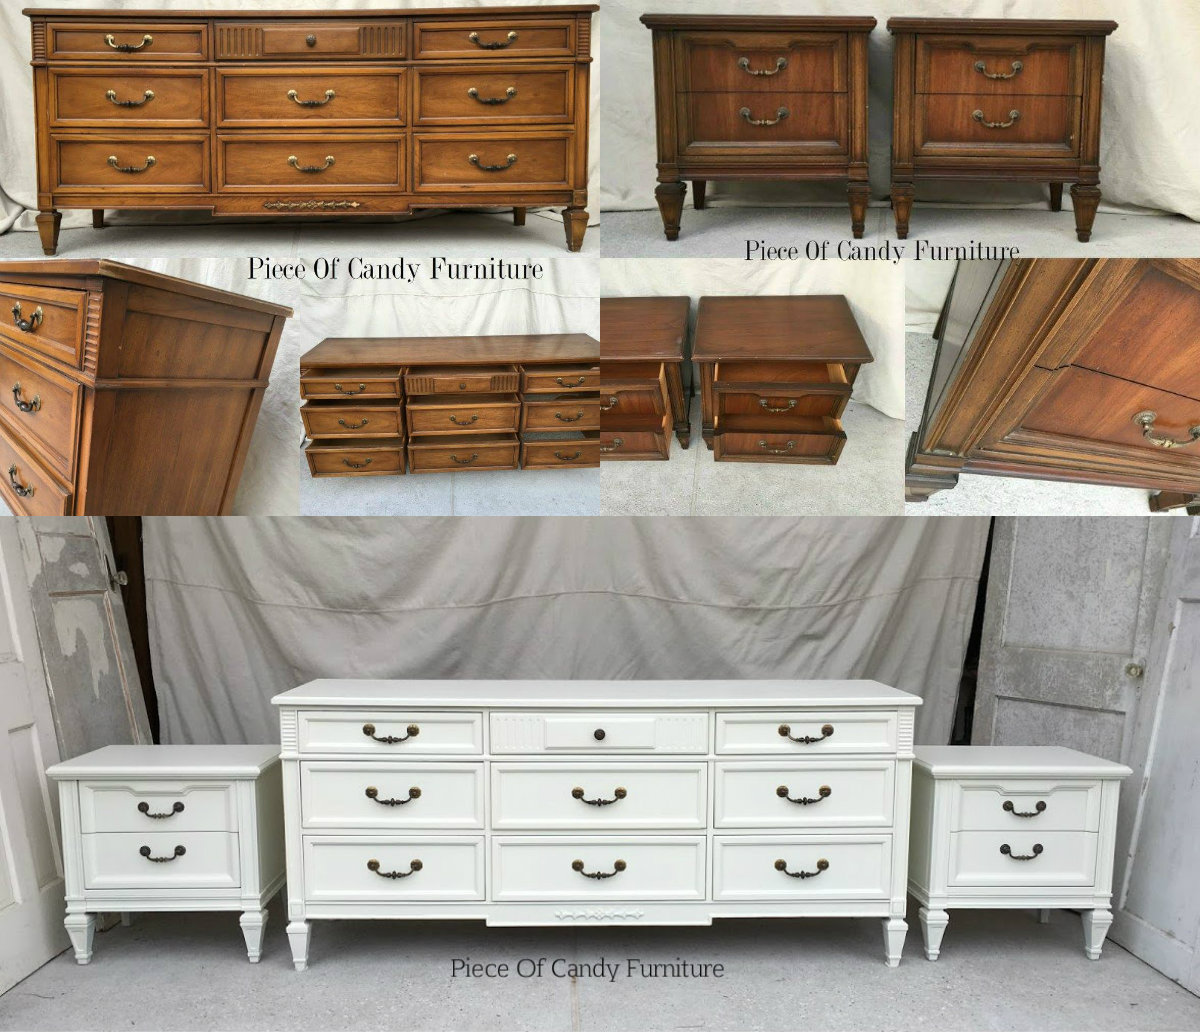 Italian Provincial Dresser Nightstand Set Painted In Antique White.